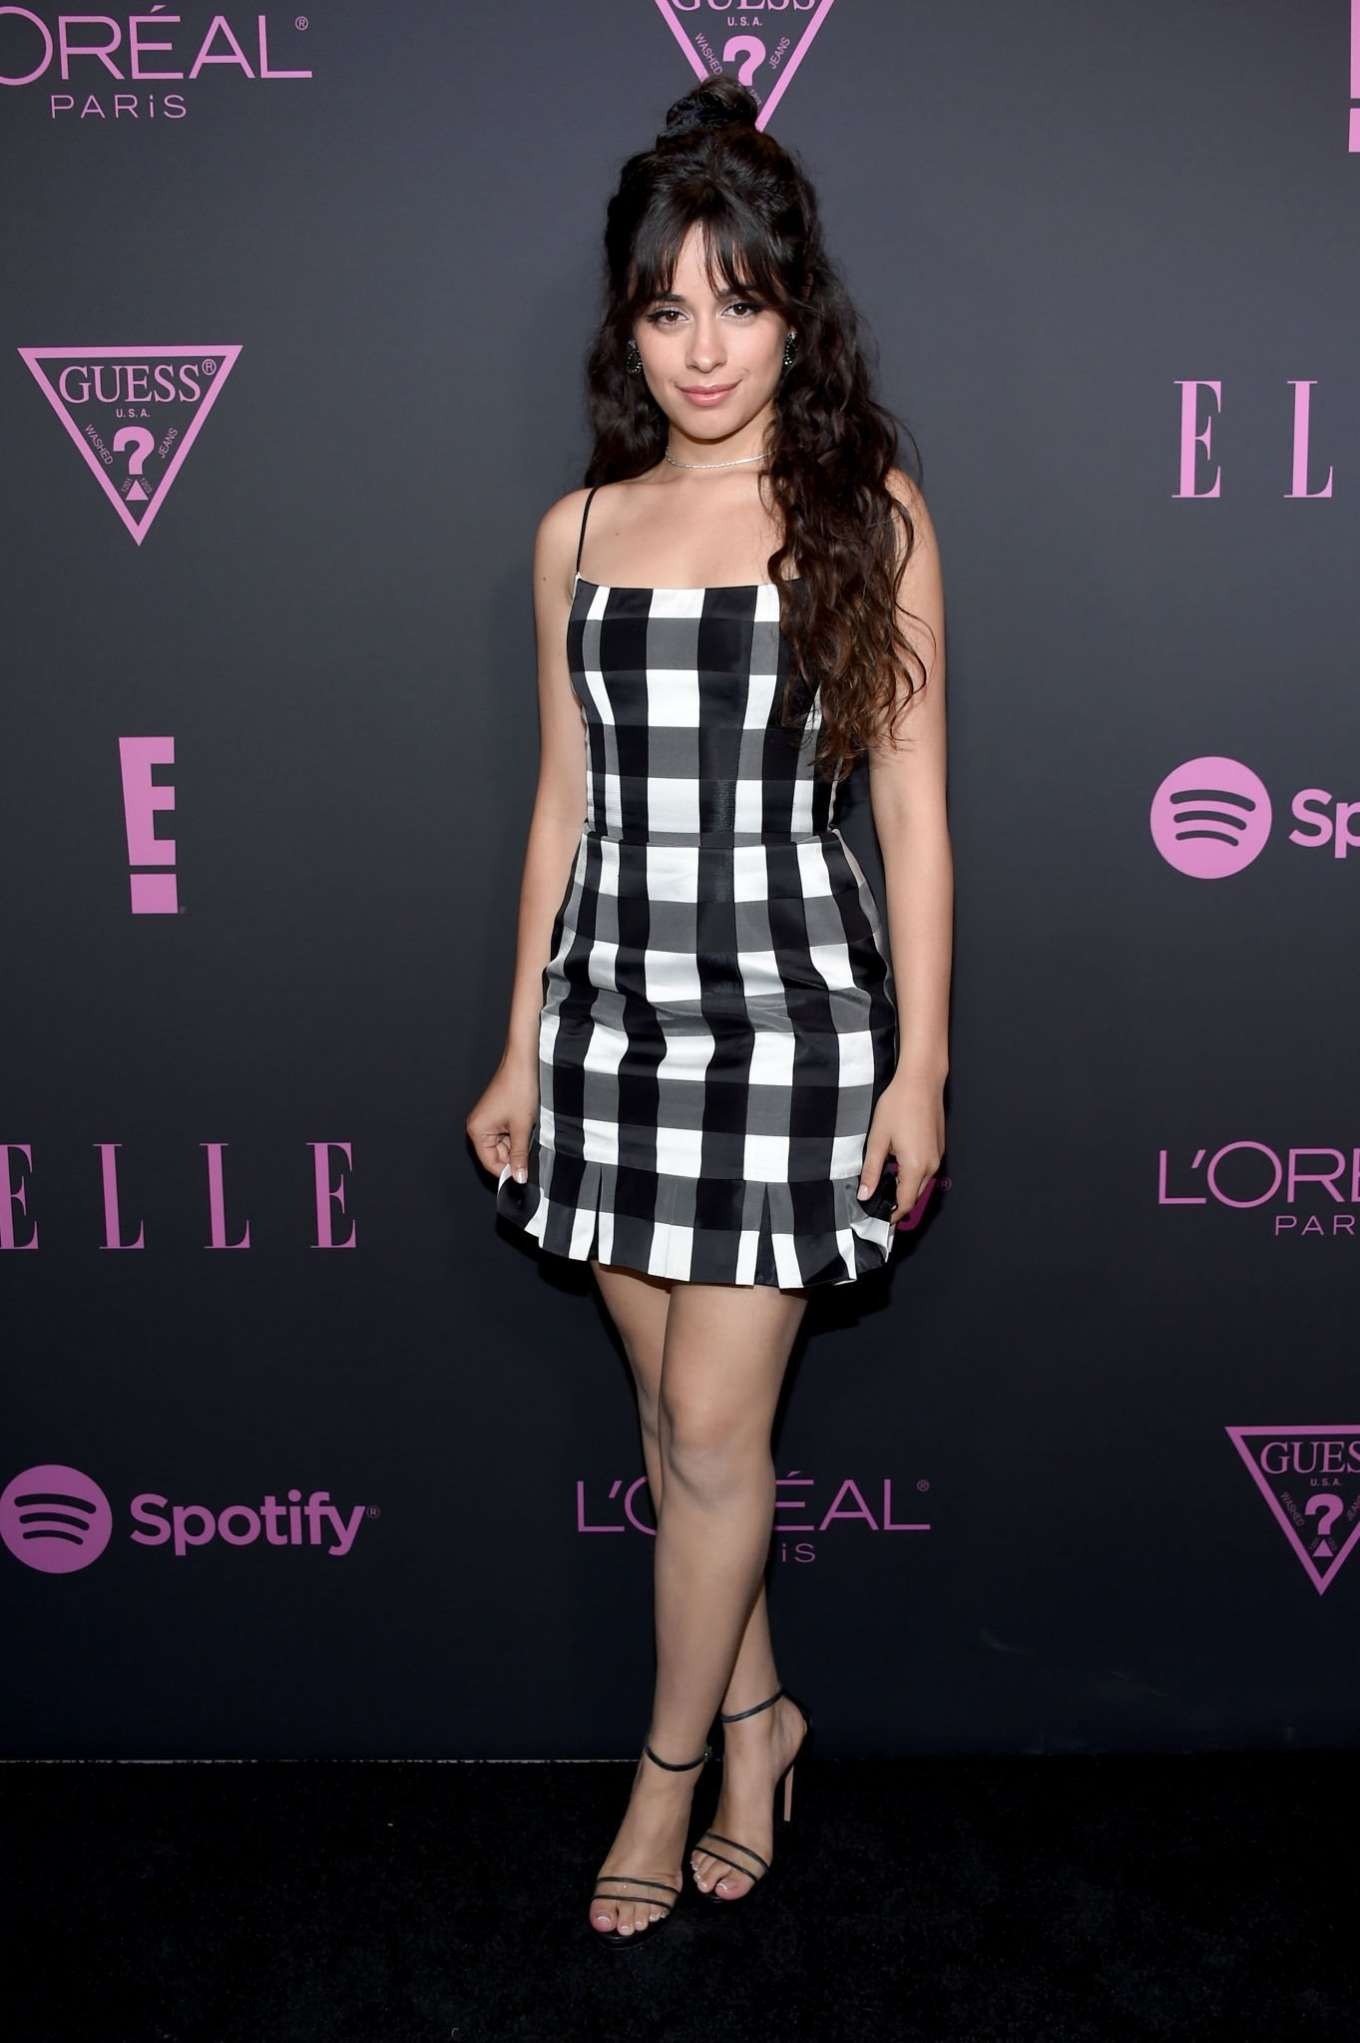 Camila Cabello - ELLE, Women in Music presented by Spotify in NYC